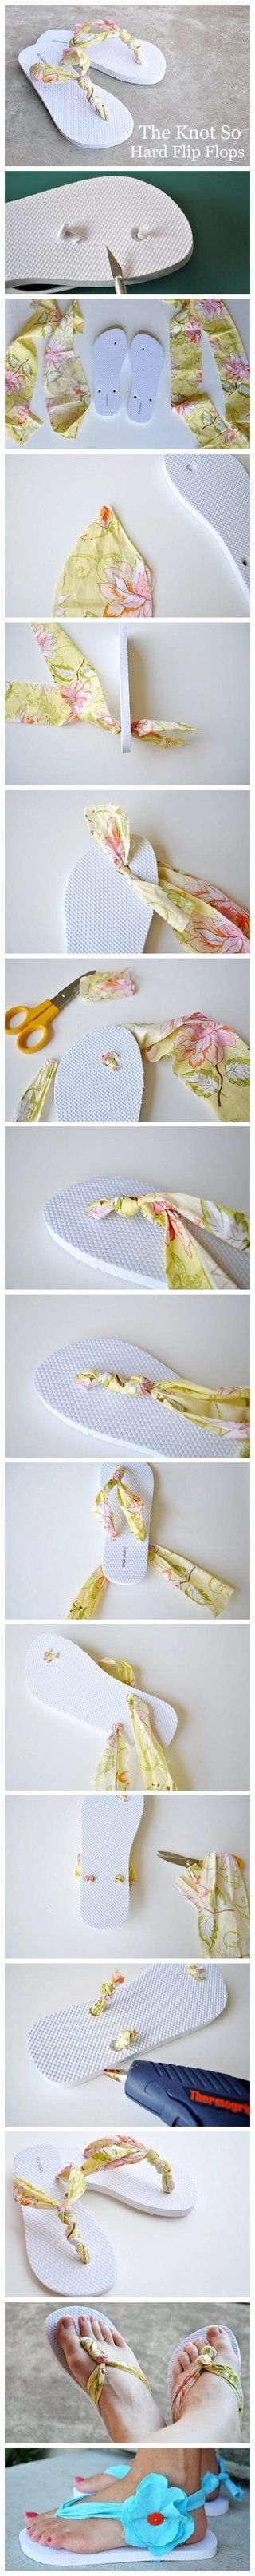 The Knot So Hard Flip Flops DIY by themotherhuddle via m.lockers: Ah summer! Here is the original post!  http://www.themotherhuddle.com/tutorial-the-knot-so-hard-flip-flop-diy/ #DIY #Flipflops